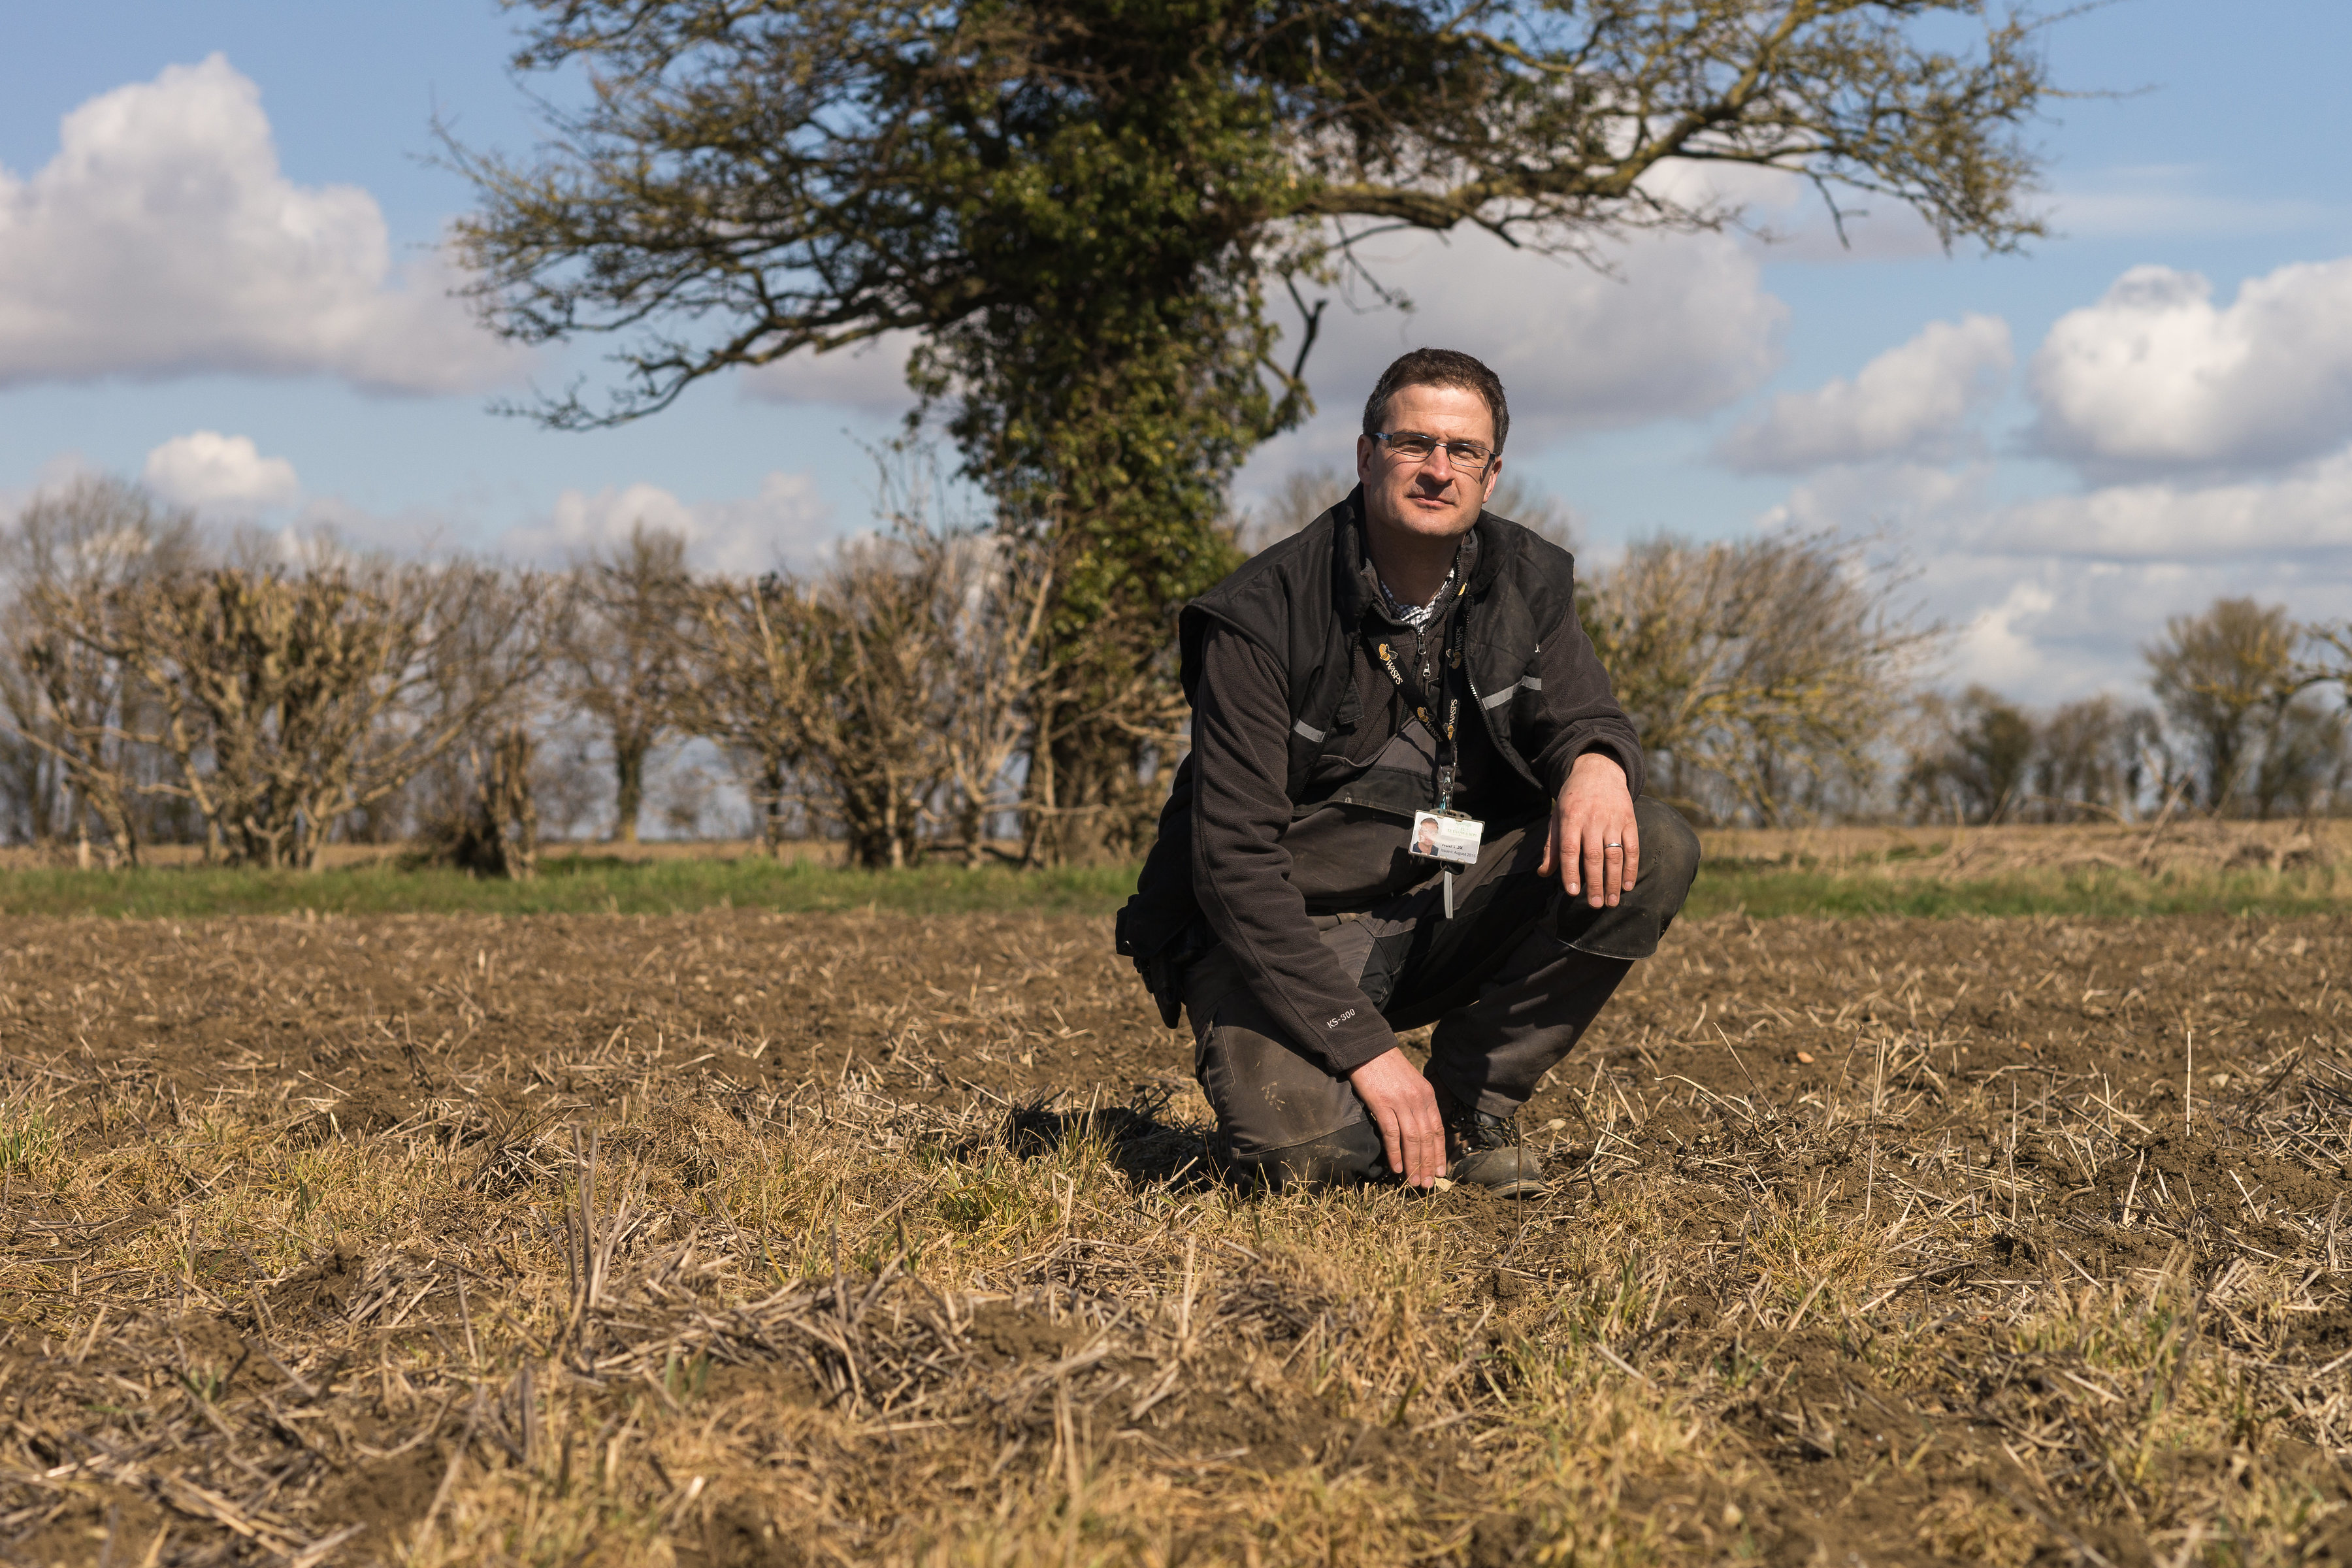 Rob Fox on his farm near Leamington Spa